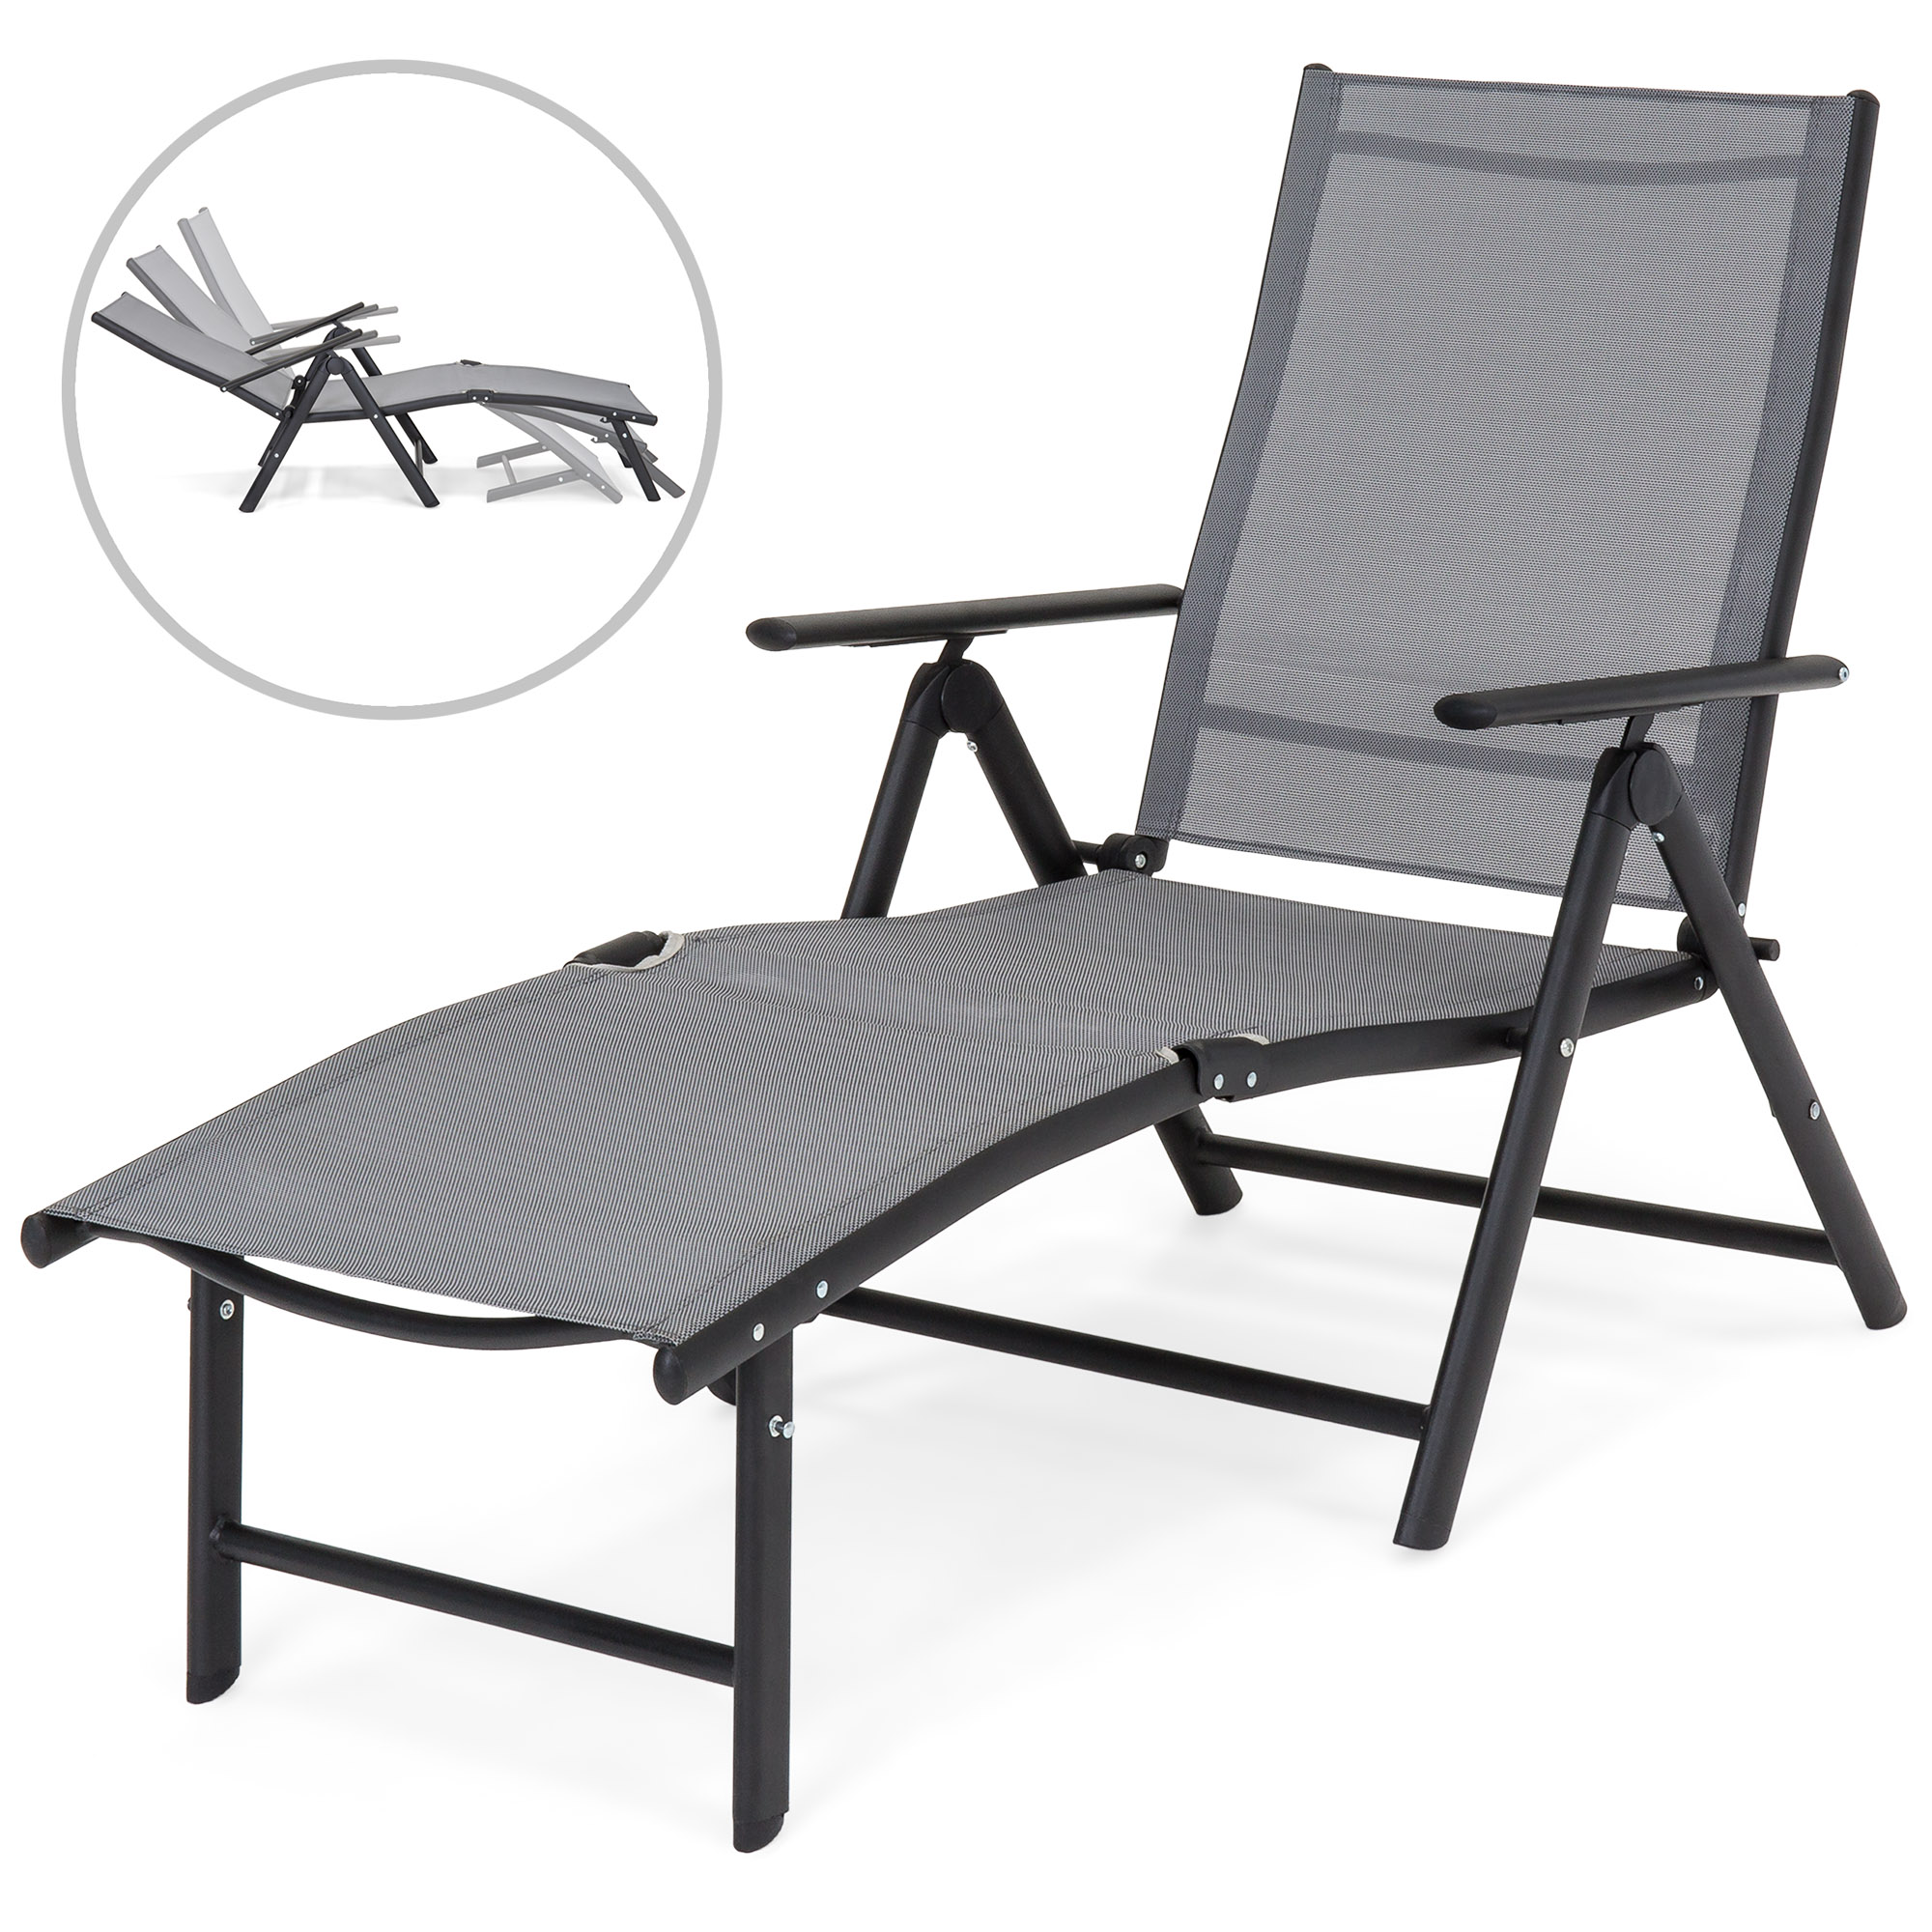 folding chaise lounge chair outdoor zanotta swivel best choice products reclining for patio poolside w